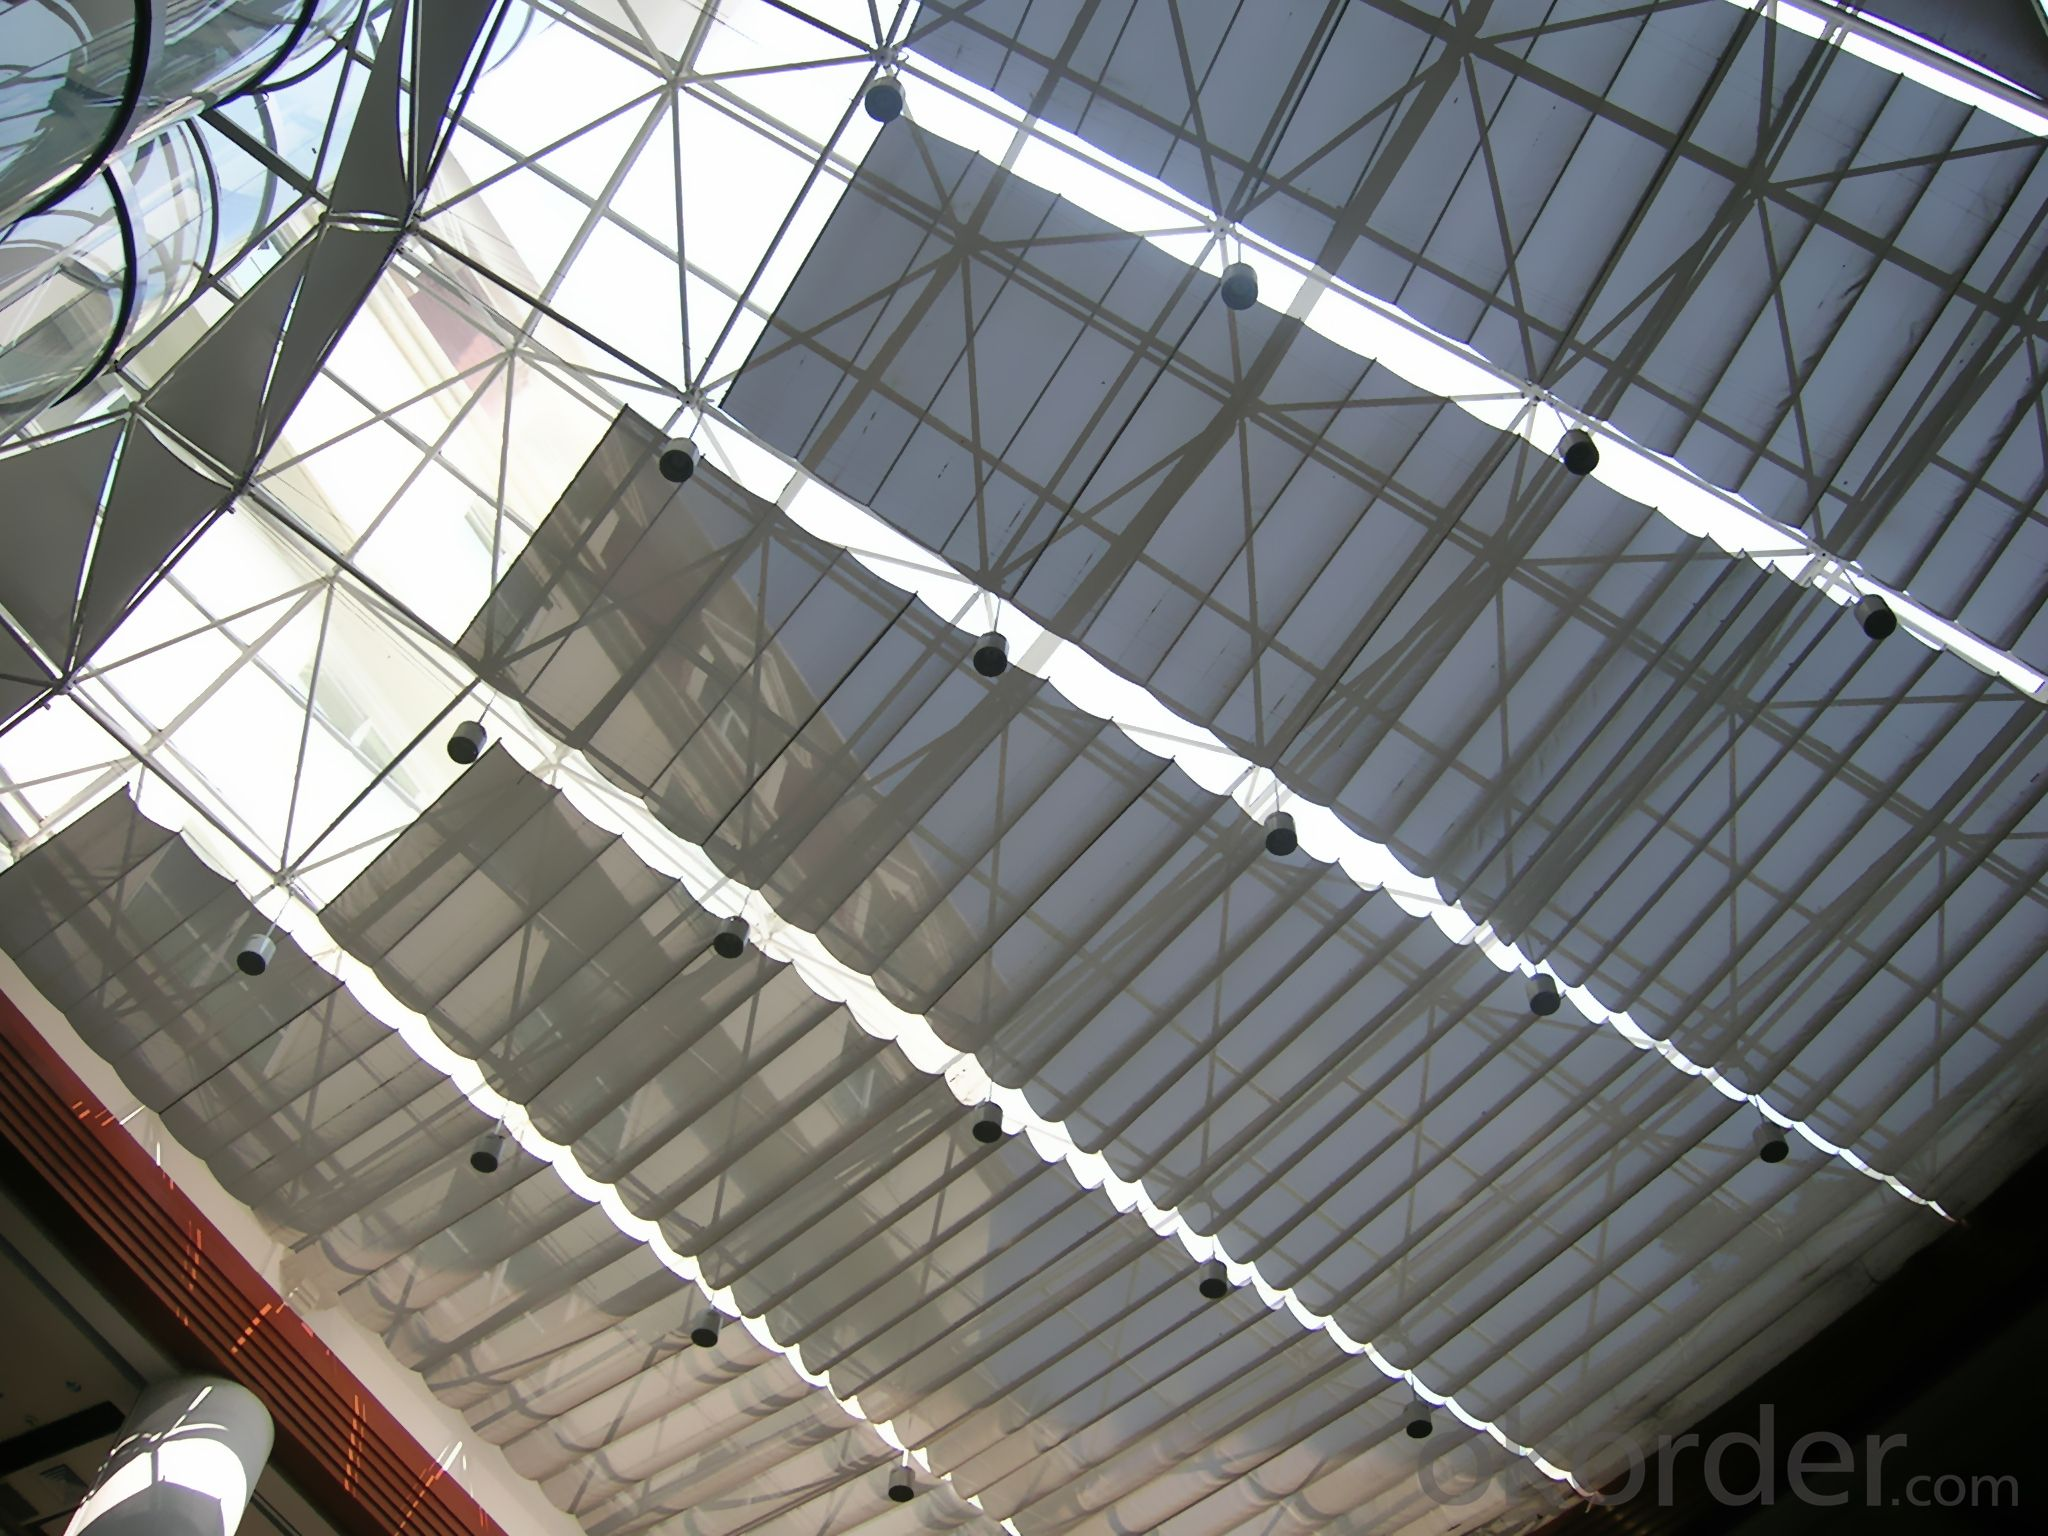 Buy Fcs Folding Skylight Blinds System For Indoor Sunshade